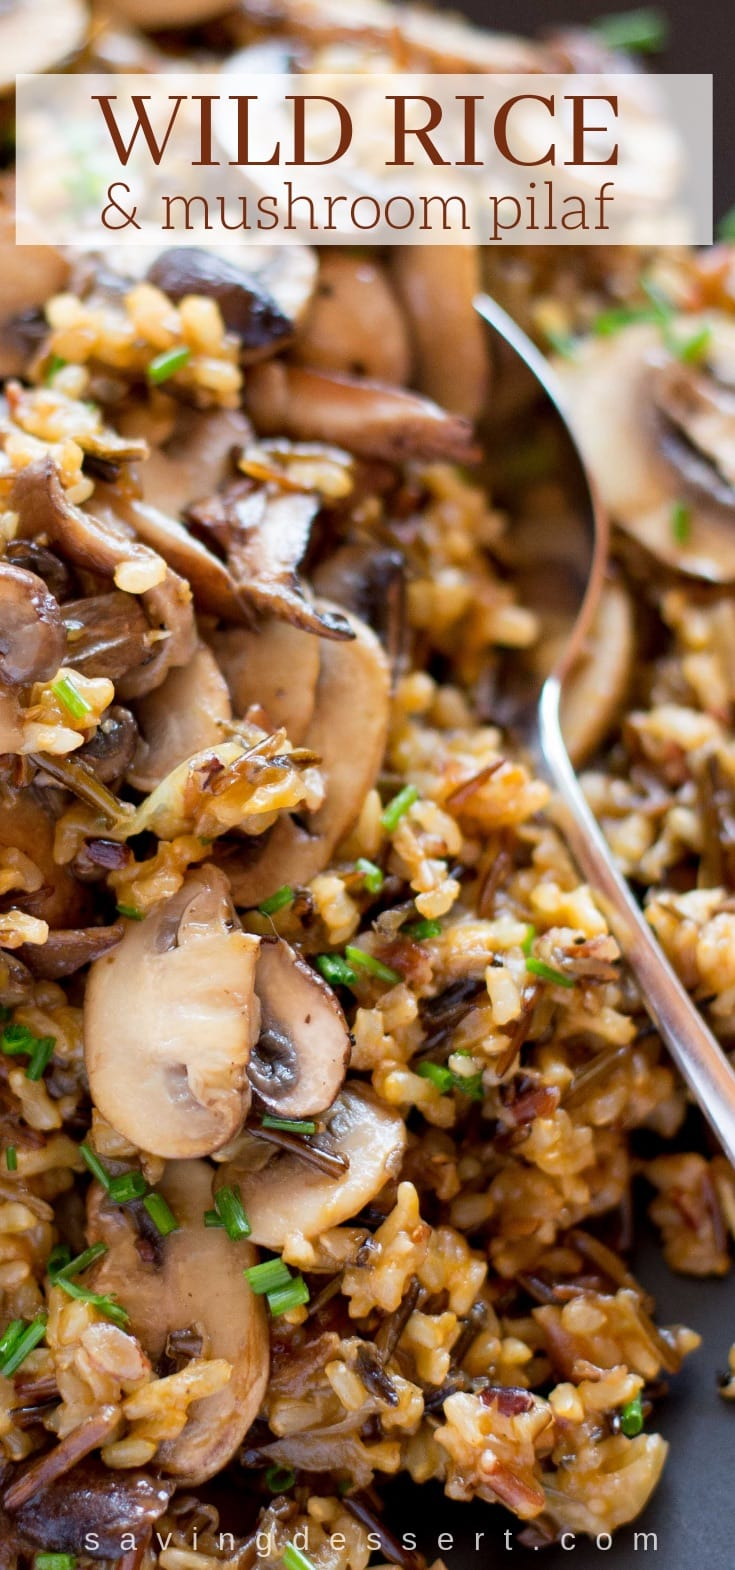 Wild Rice and Mushroom Pilaf -An easy and delicious make-ahead side dish loaded with a variety of mushrooms #wildrice #mushroom #ricepilaf #makeahead #sidedish #mushrooms #pilaf